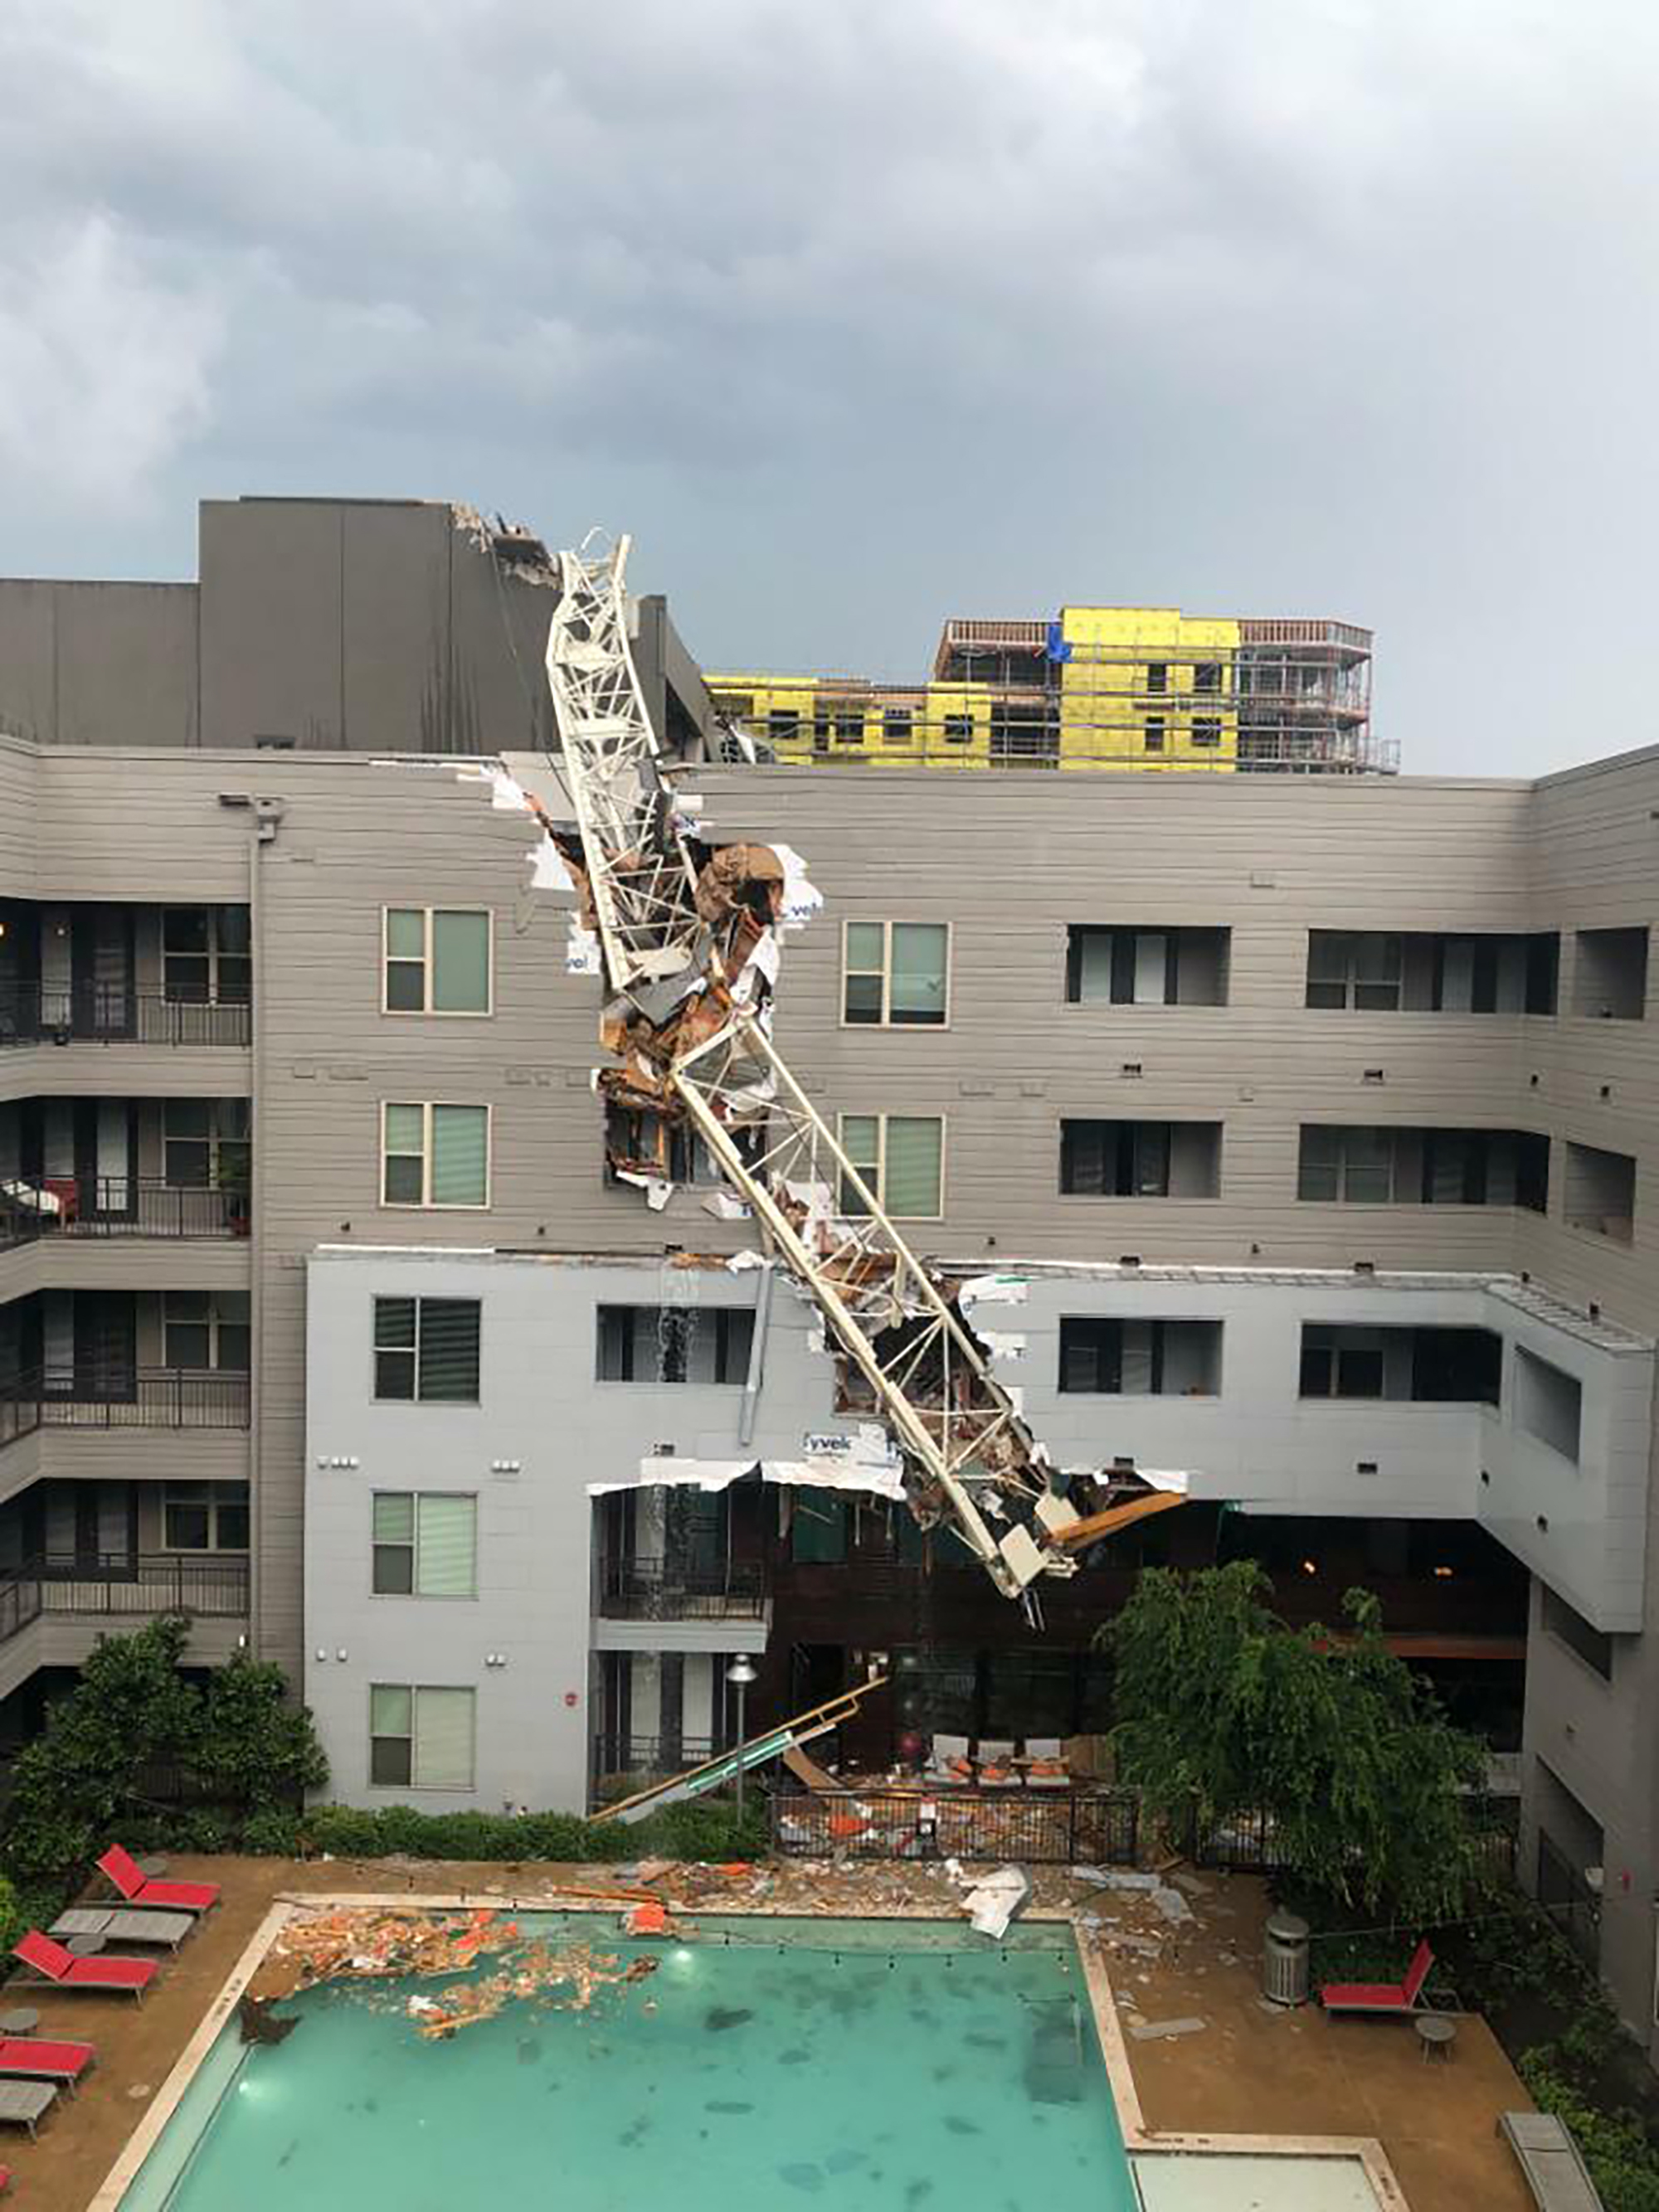 Crane collapse amid severe weather leaves at least 1 dead in